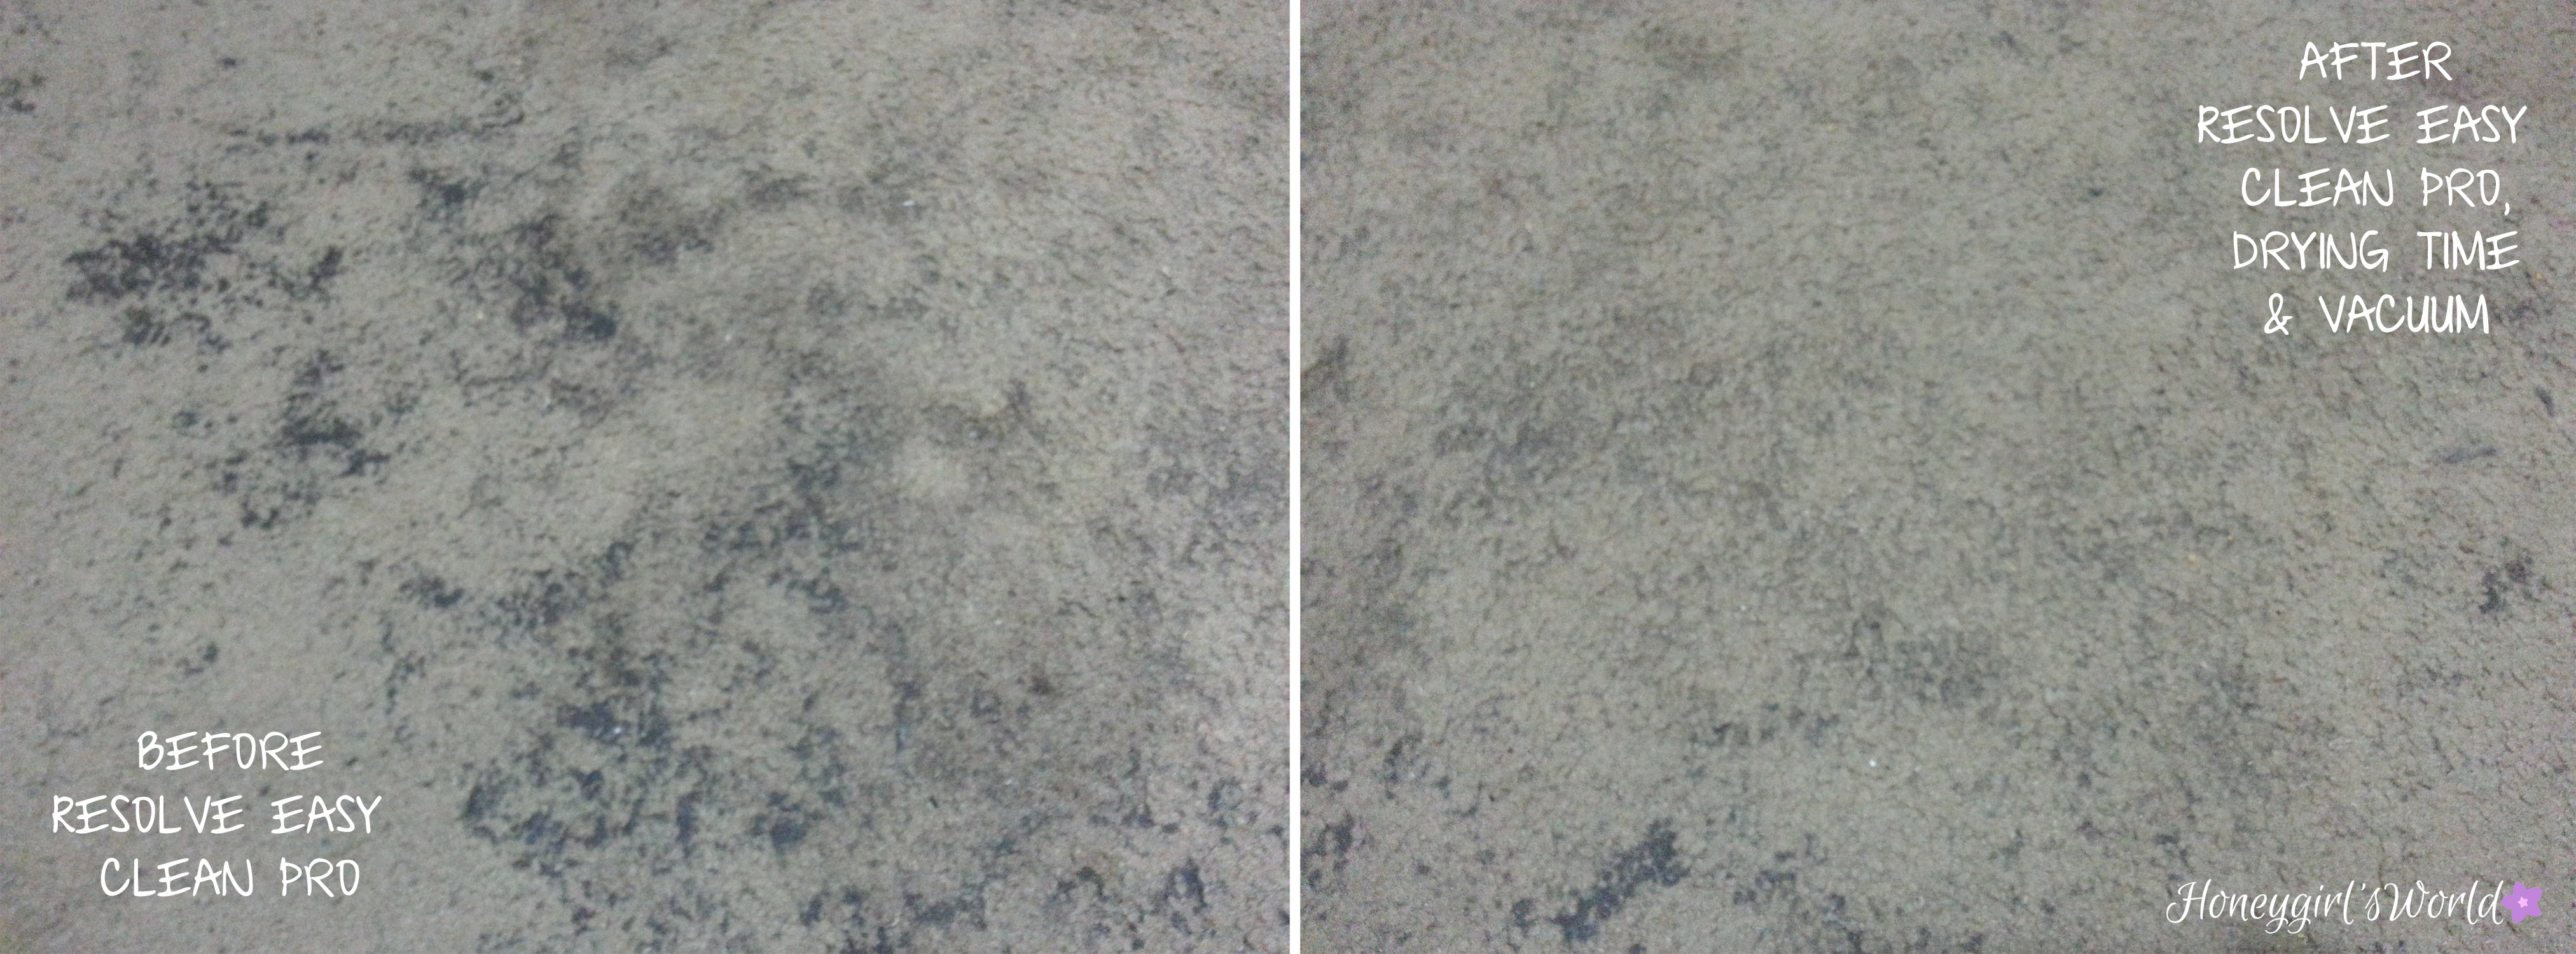 resolve carpet cleaner before and after